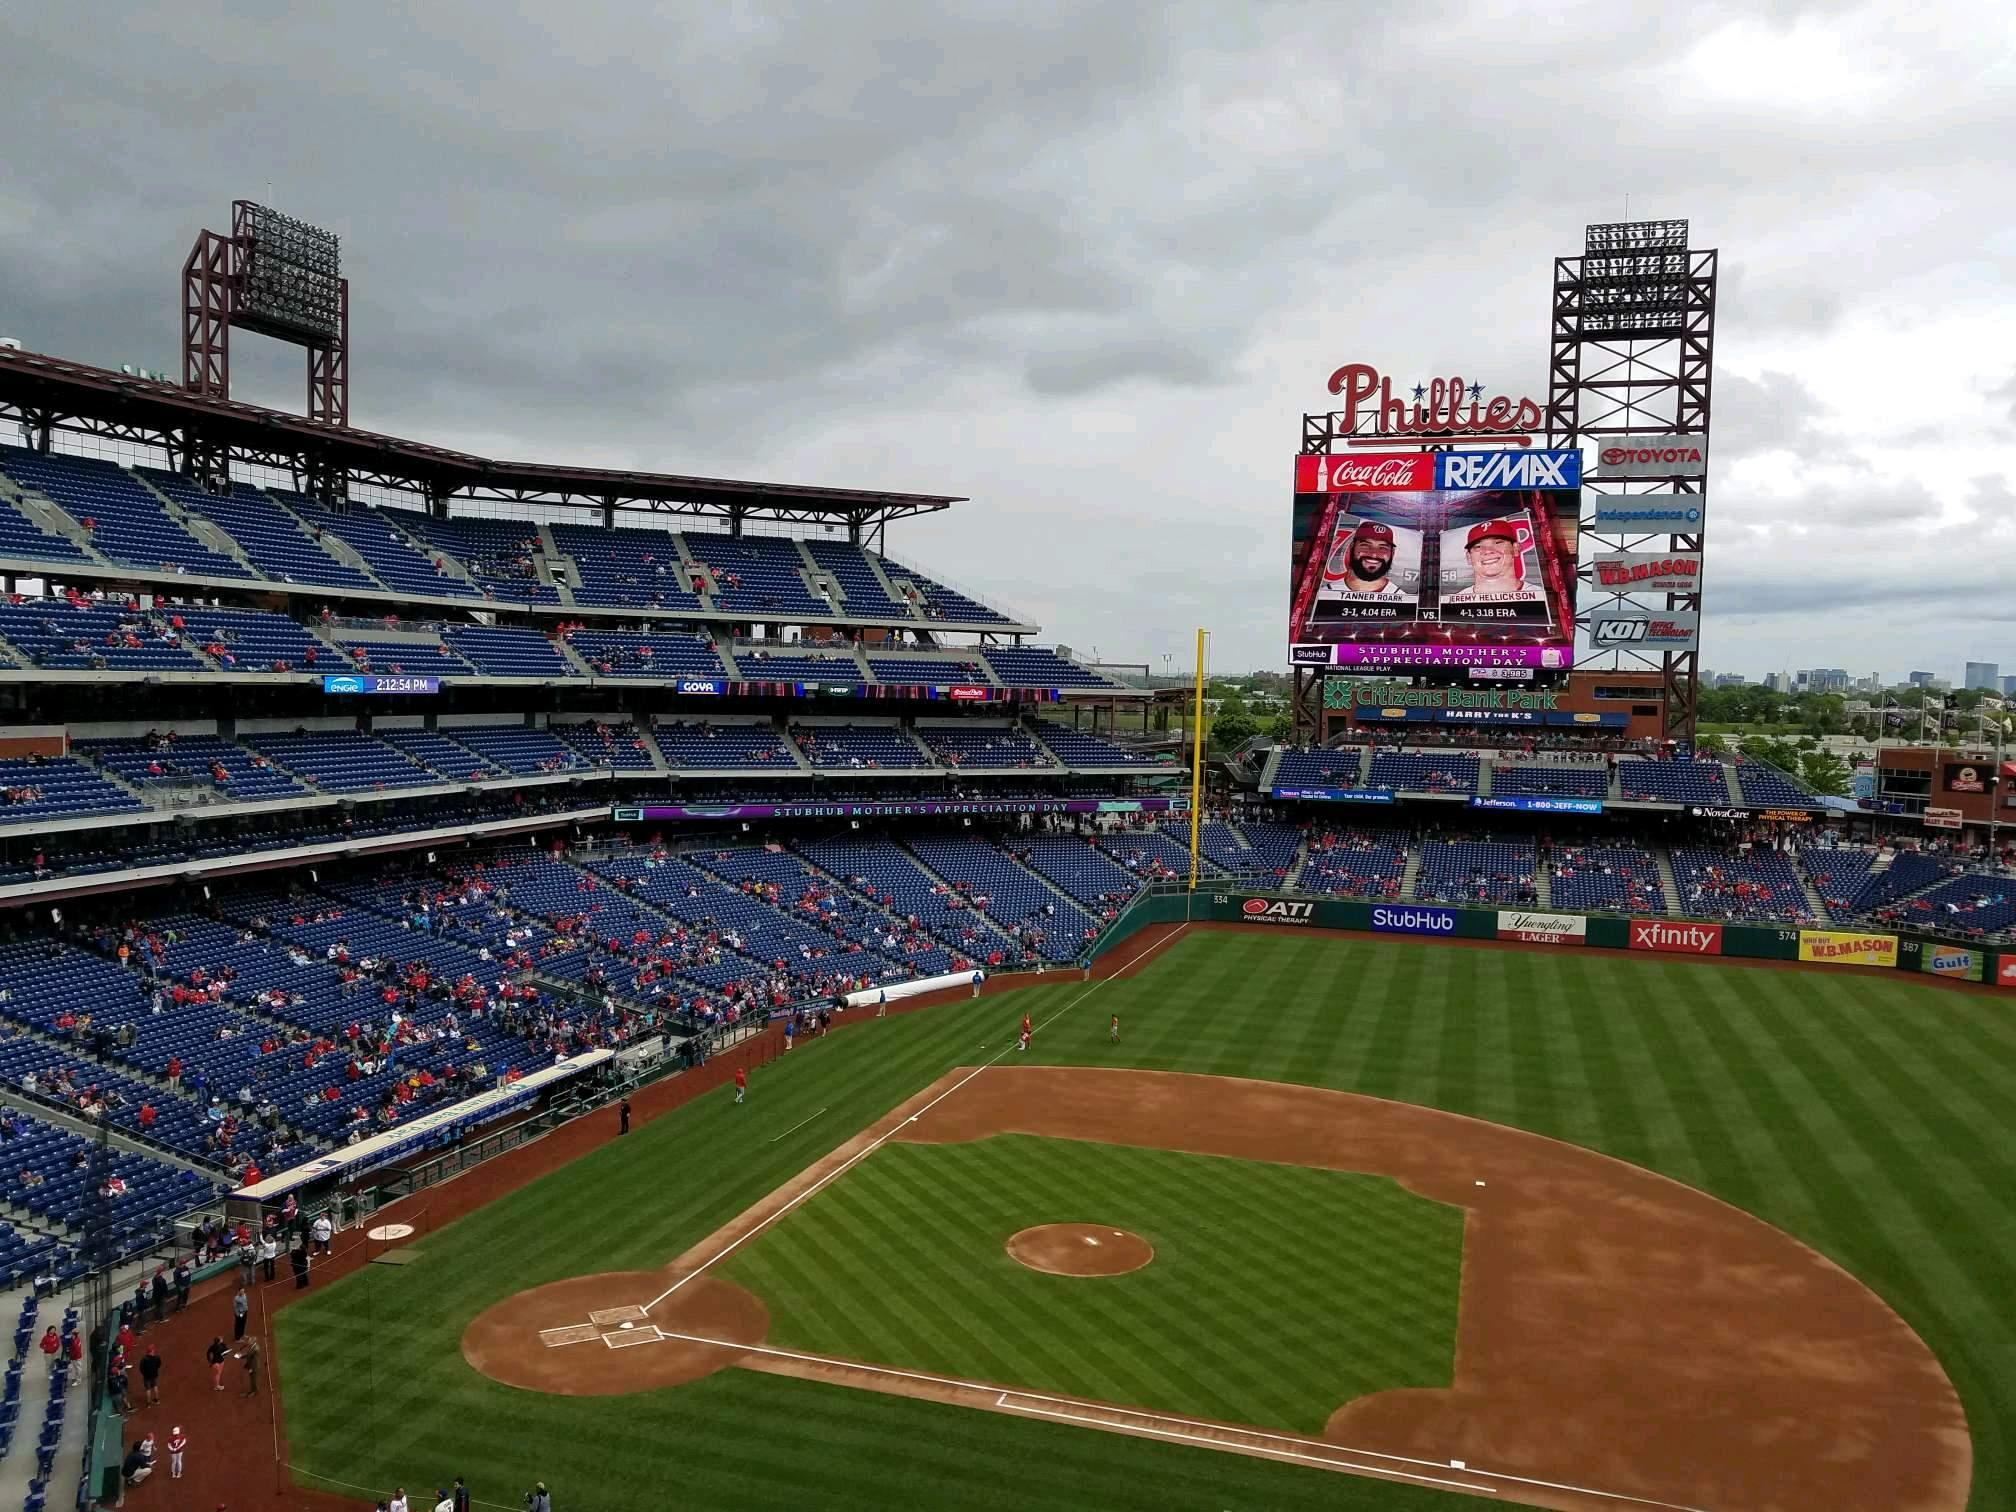 Citizens Bank Park Section 315 Row 1 Seat 3